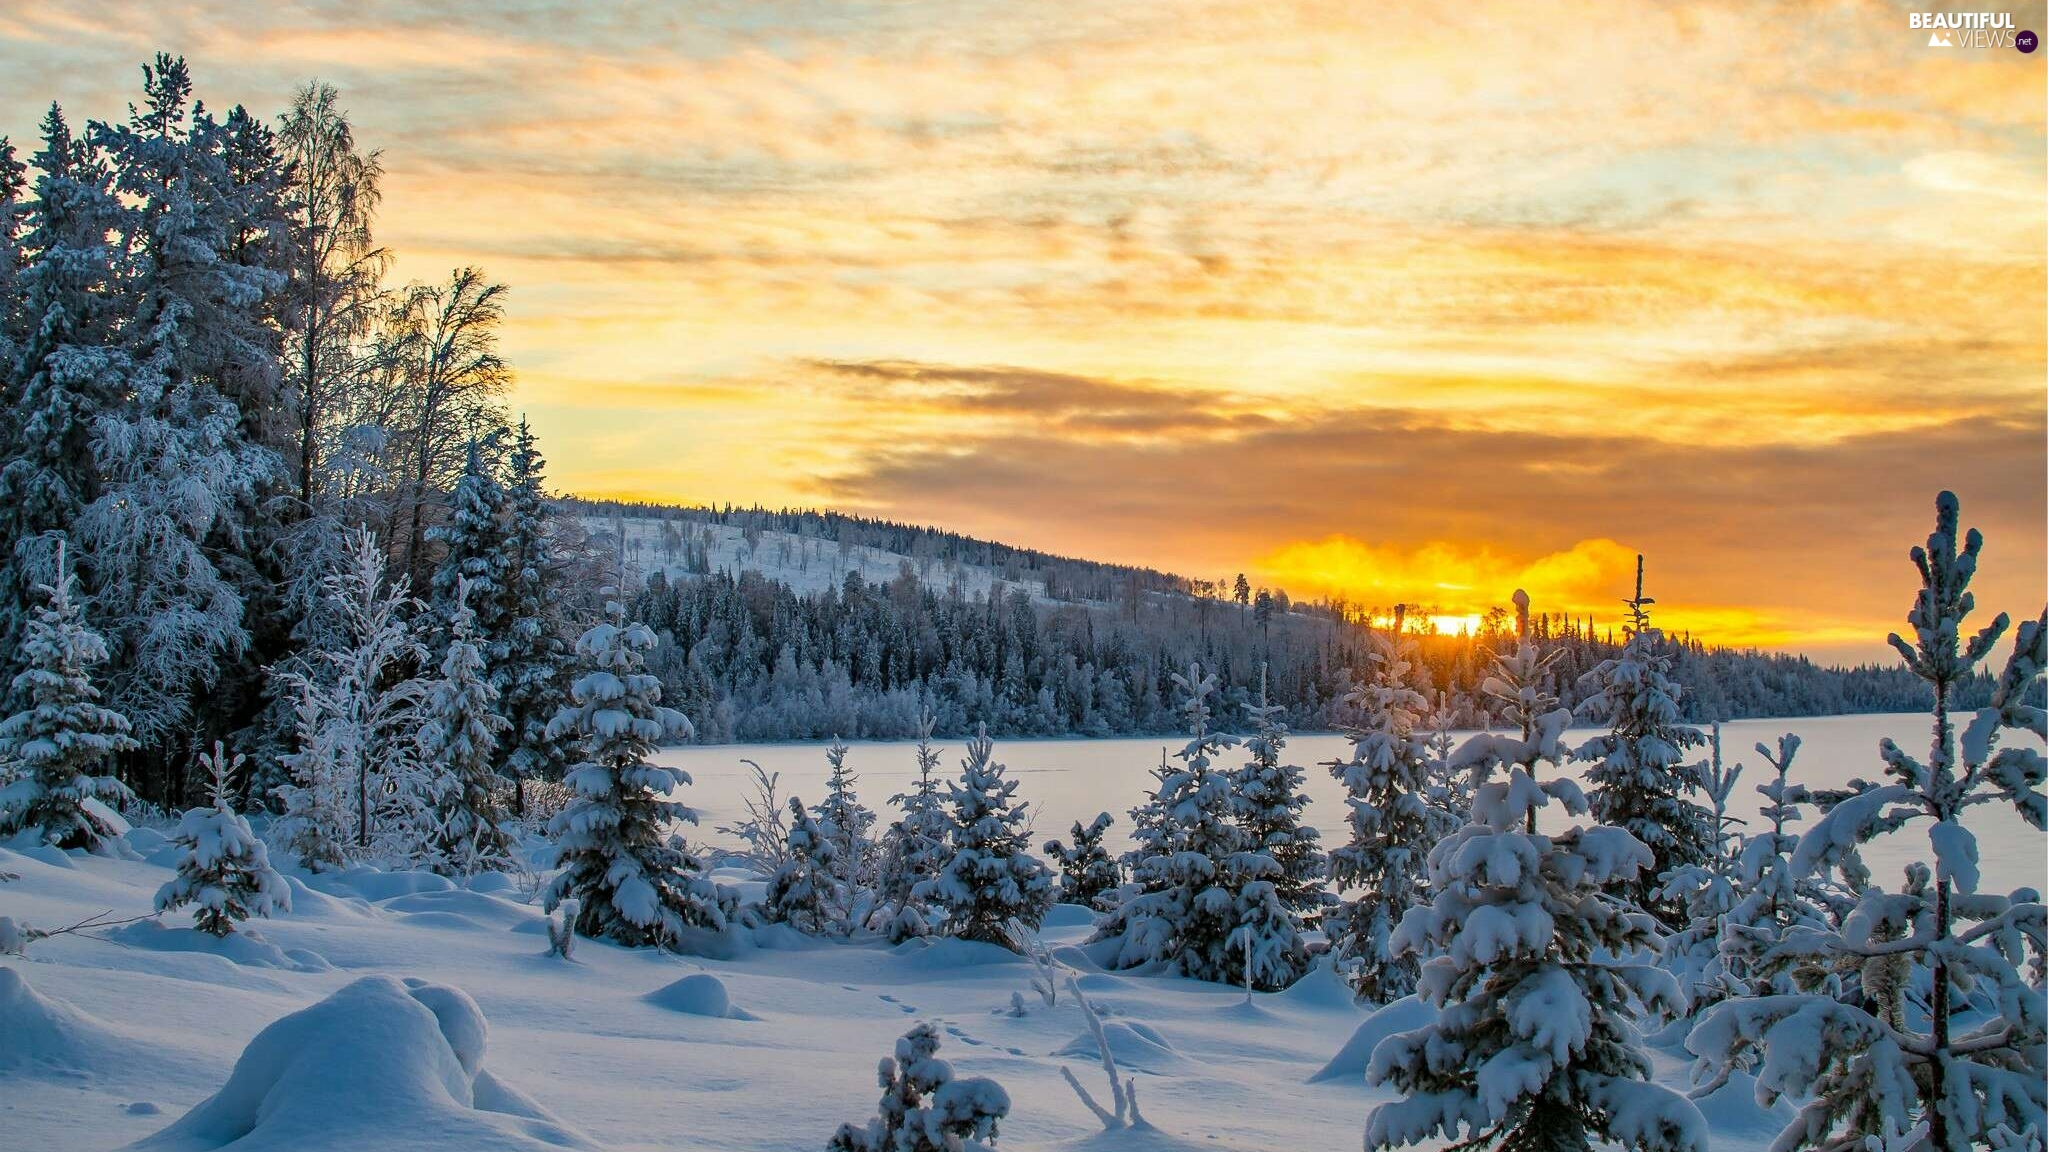 viewes, The Hills, Great Sunsets, trees, winter, Spruces, snow